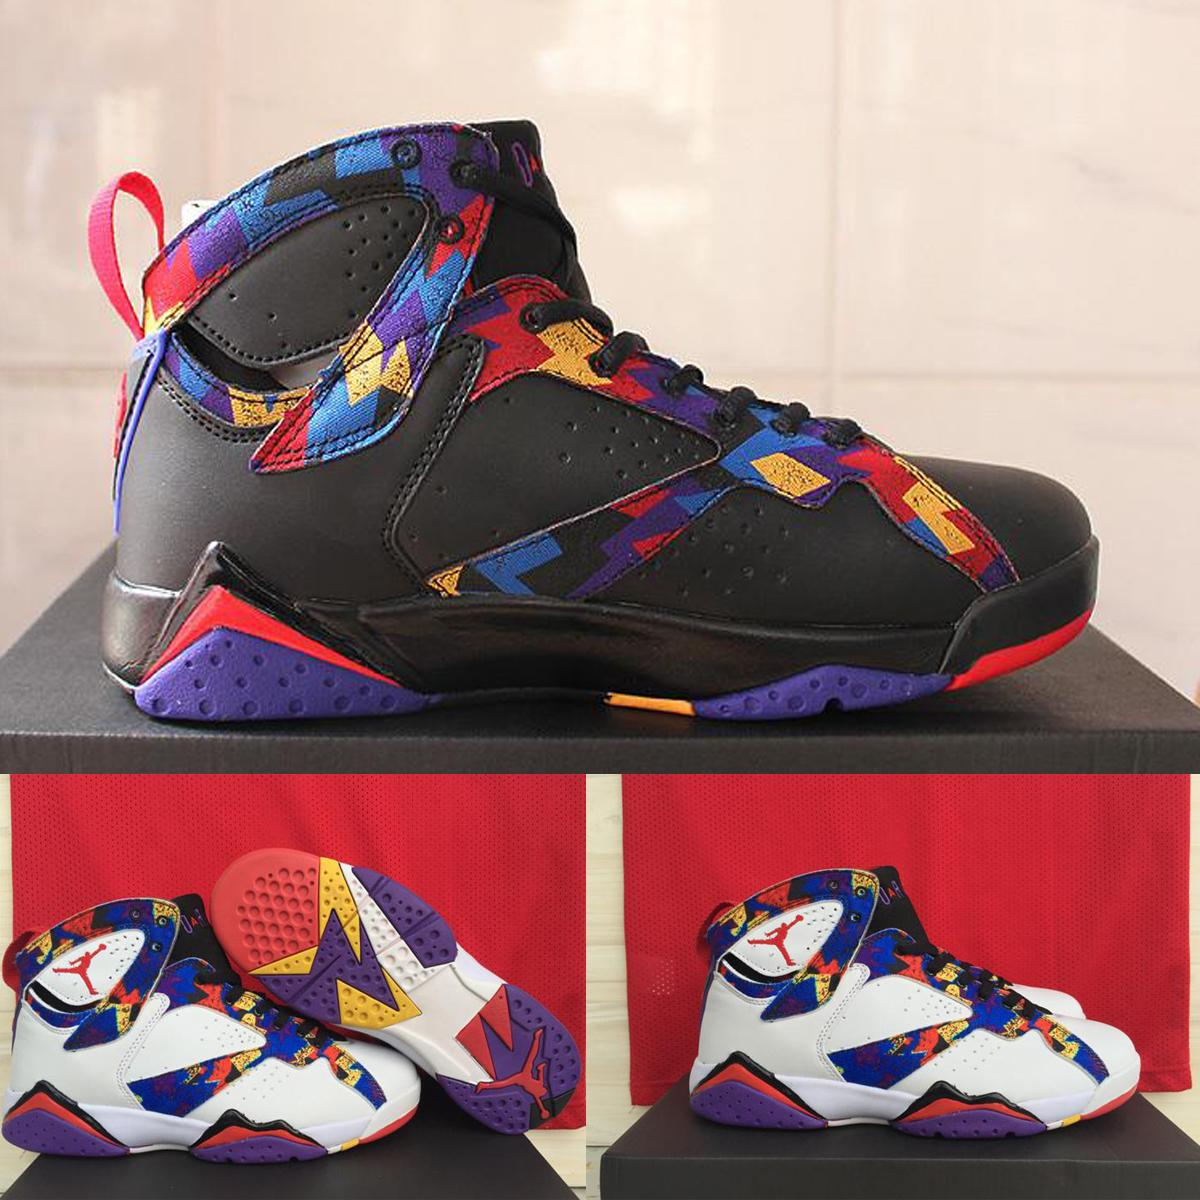 Find Nike Air Jordan 7 Cheap sale Sweater